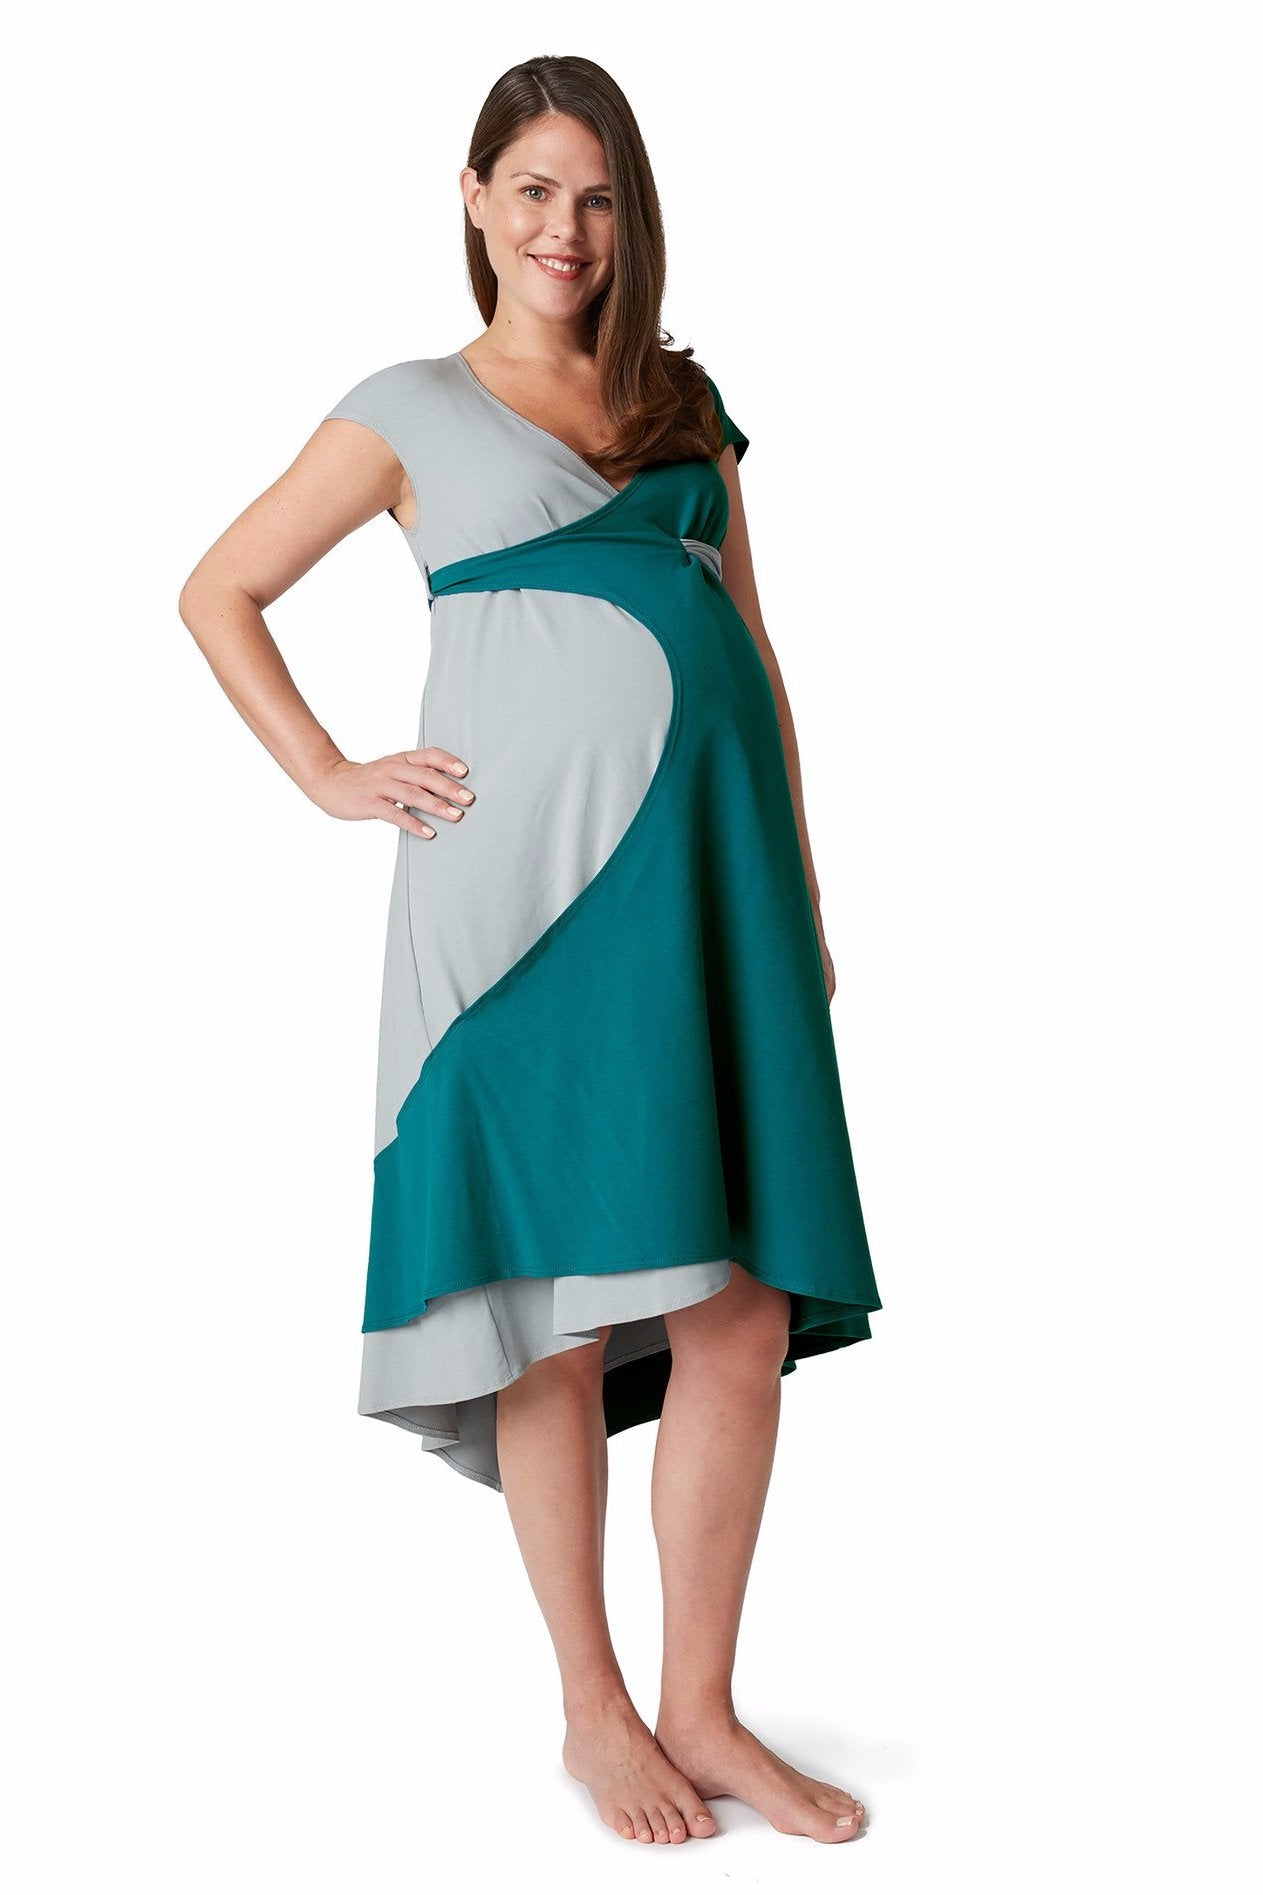 Transition gowns best baby shower gifts for moms pretty pushers maternity dress birthing gown and nursing dress all in one ombrellifo Images